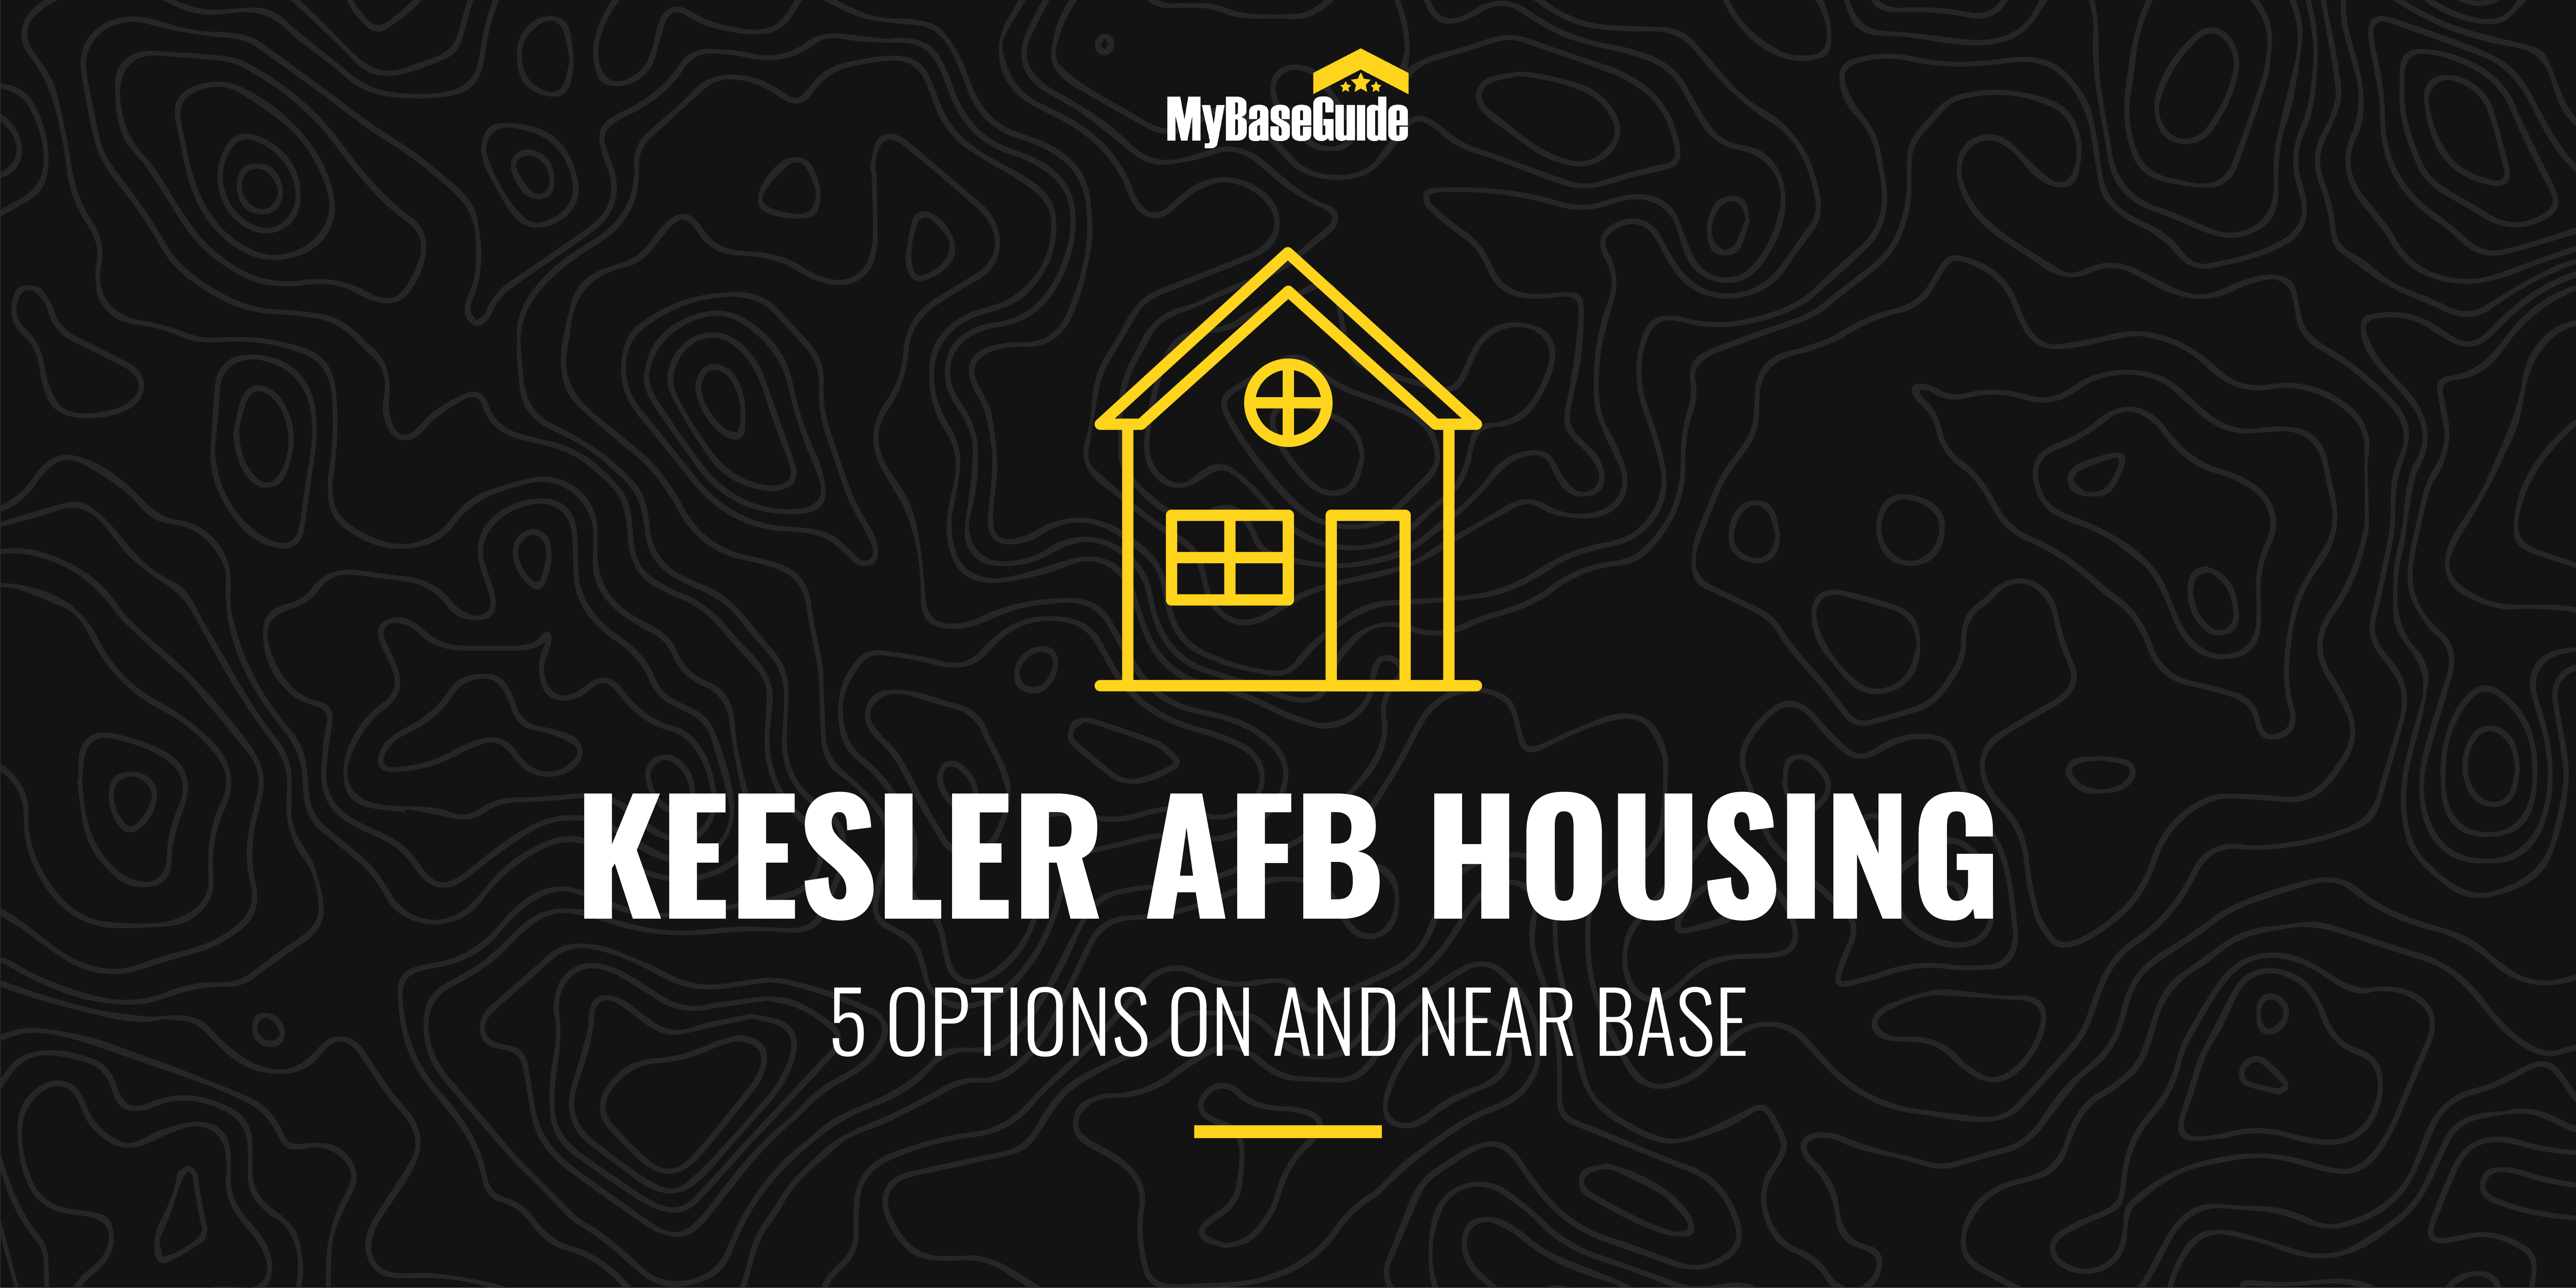 Keesler AFB Housing: 5 Options On and Near Base